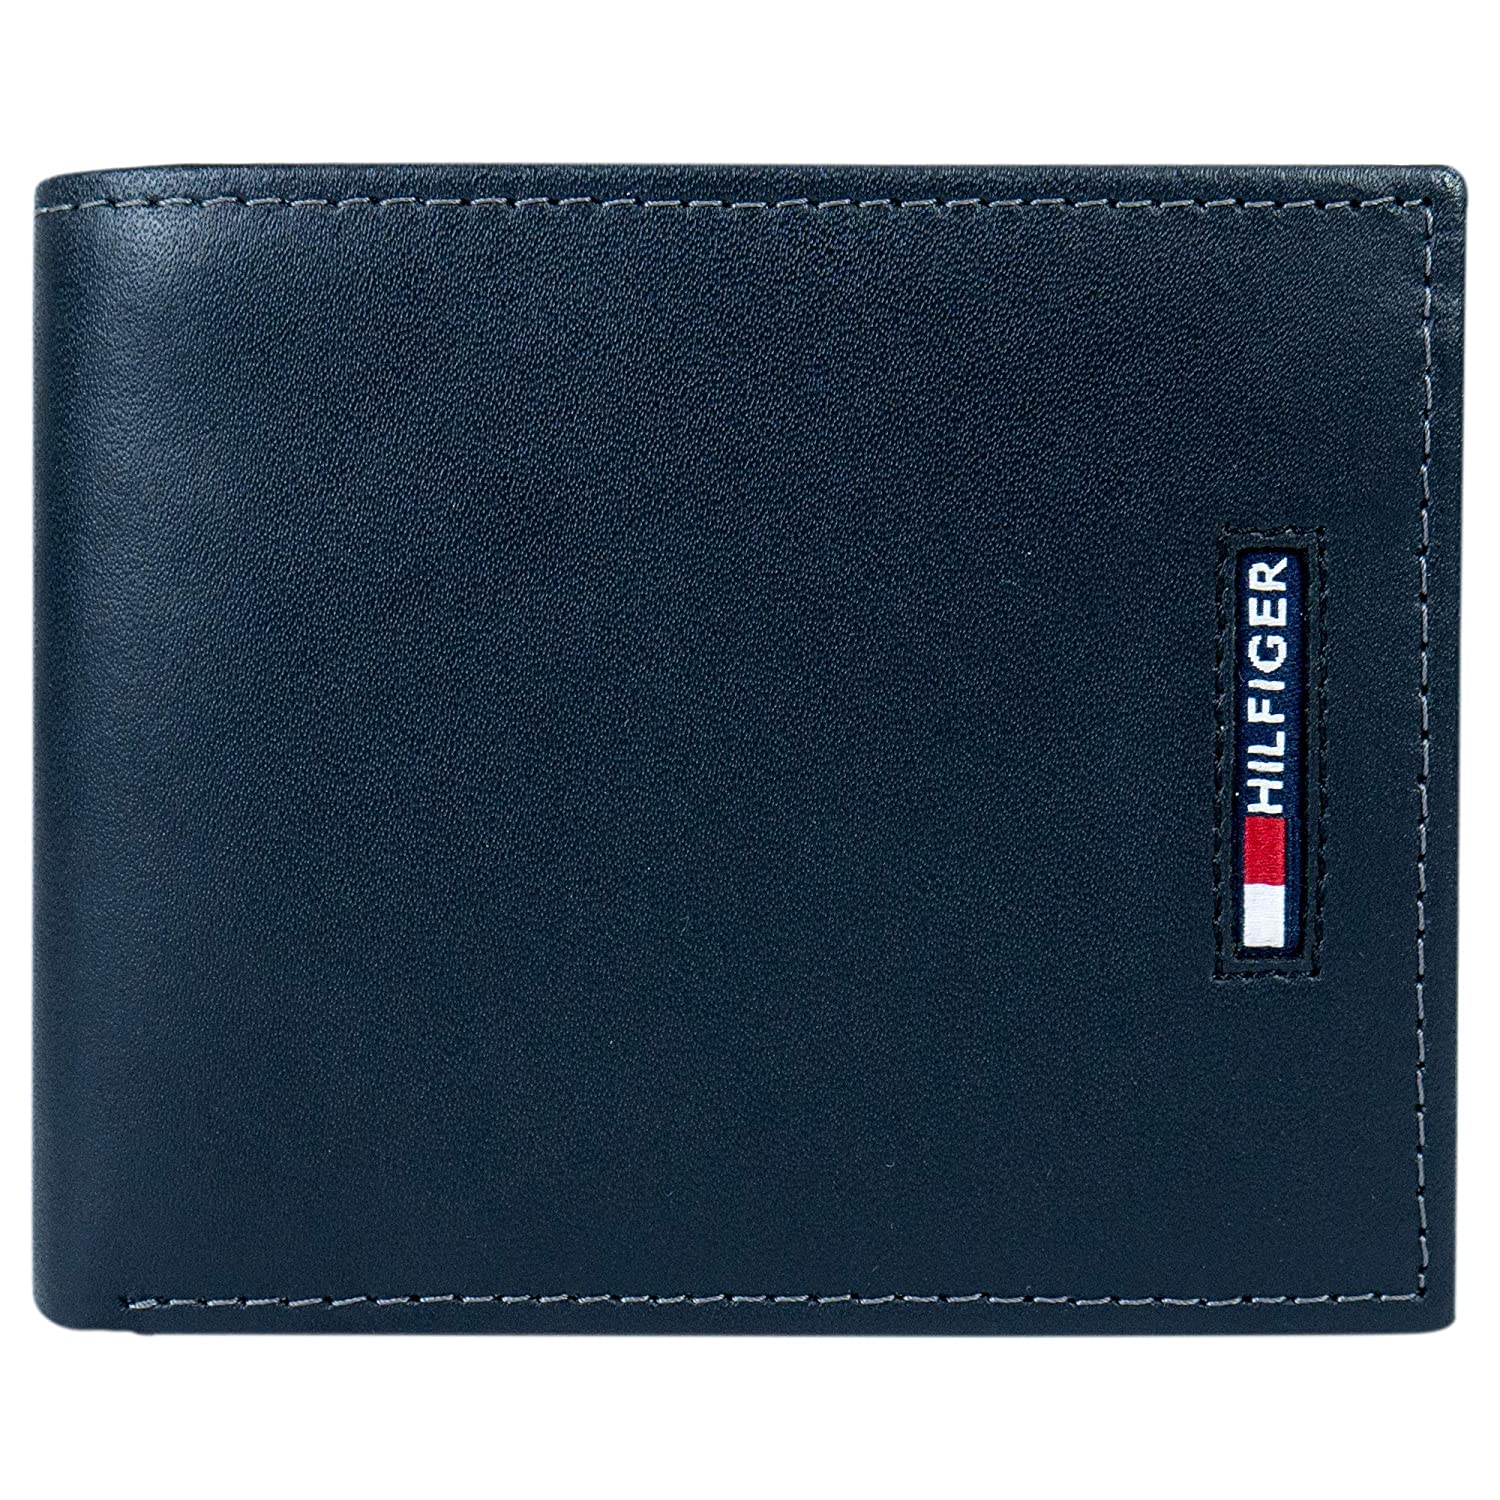 Tommy Hilfiger Mens Leather Wallet-Bifold with RFID Blocking Protection  black  One Size